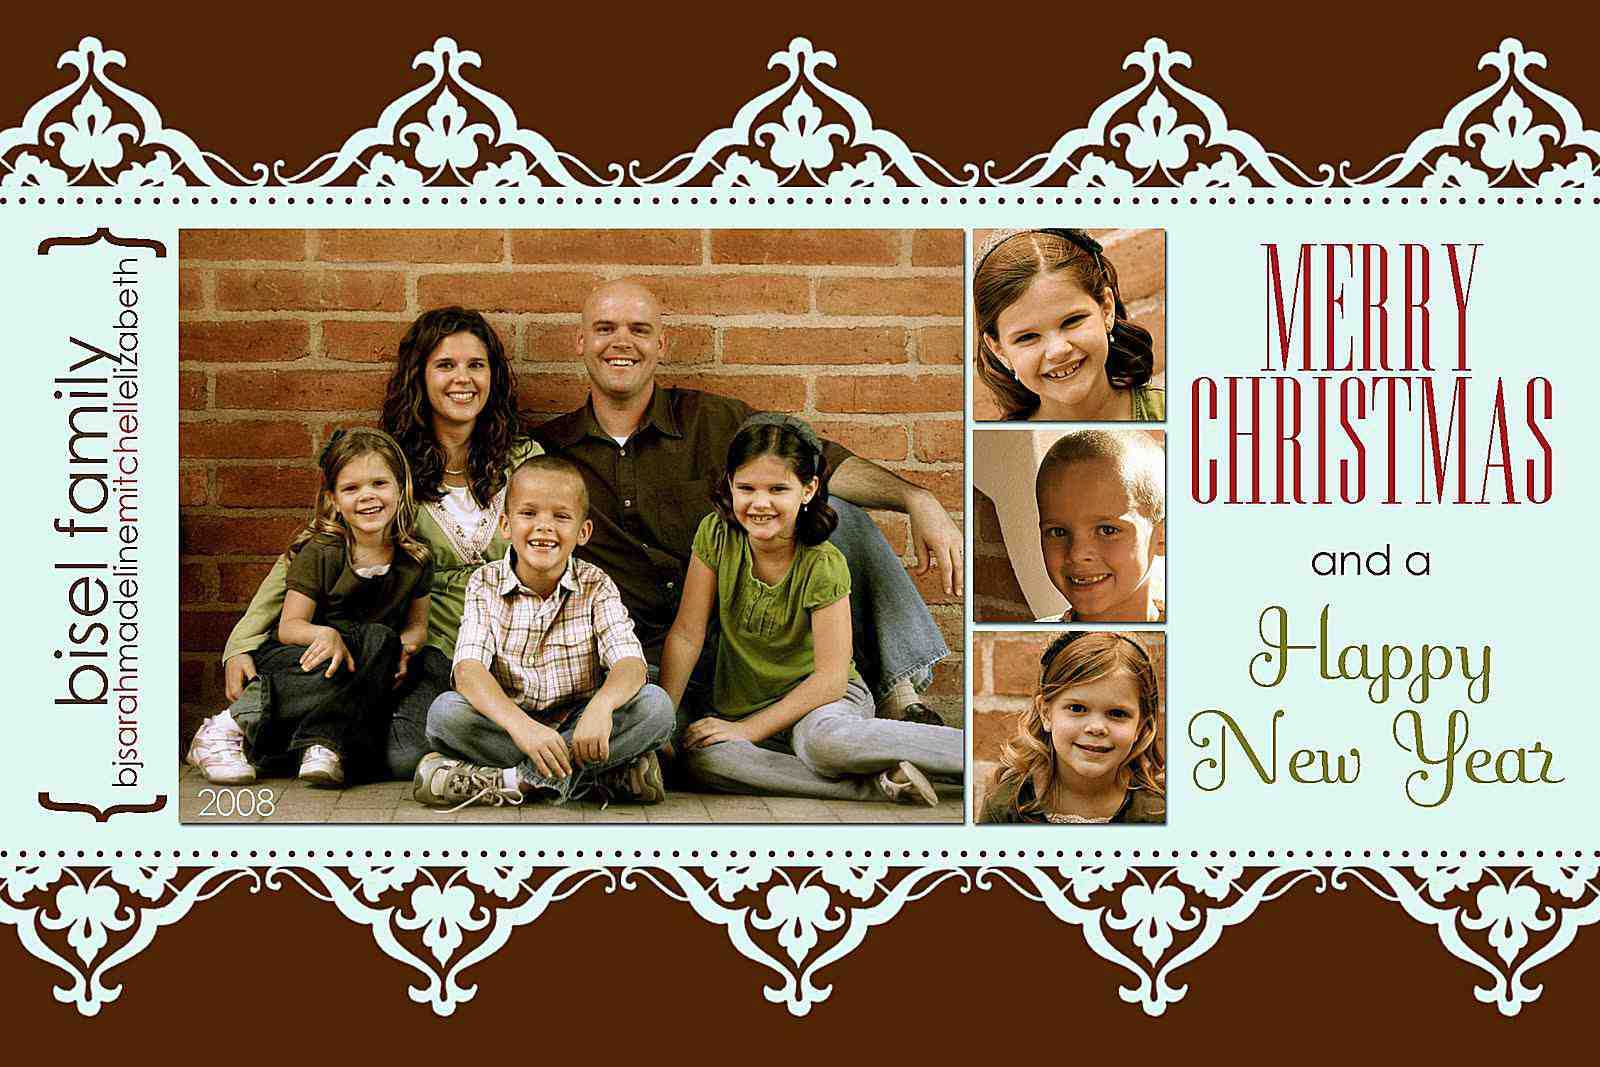 024 Milk And Honey Designs Free Christmas Card Templates Pertaining To Free Christmas Card Templates For Photographers